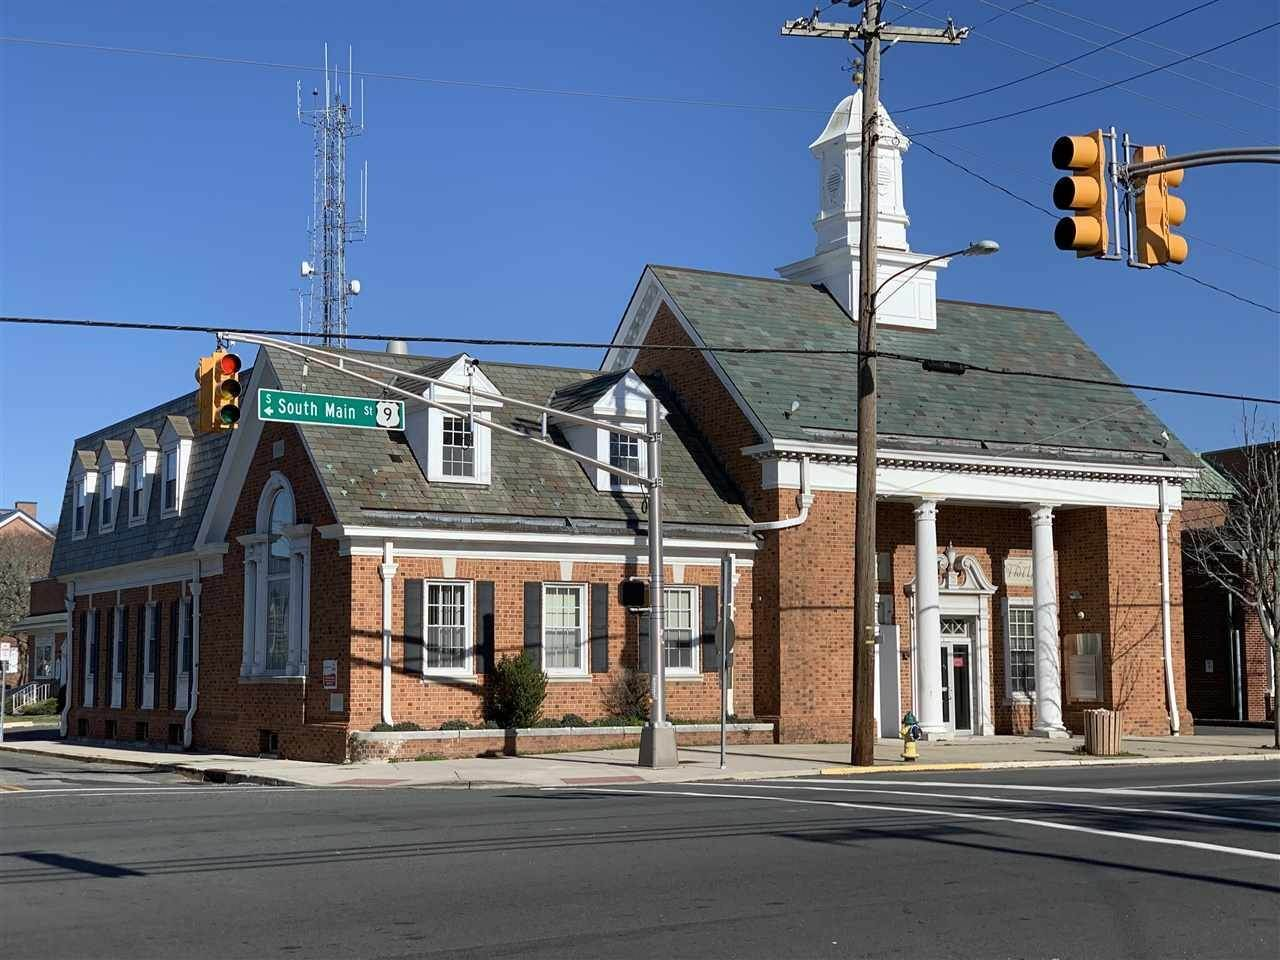 Commercial for Sale at 1 N Main Street Cape May Court House, New Jersey 08210 United States